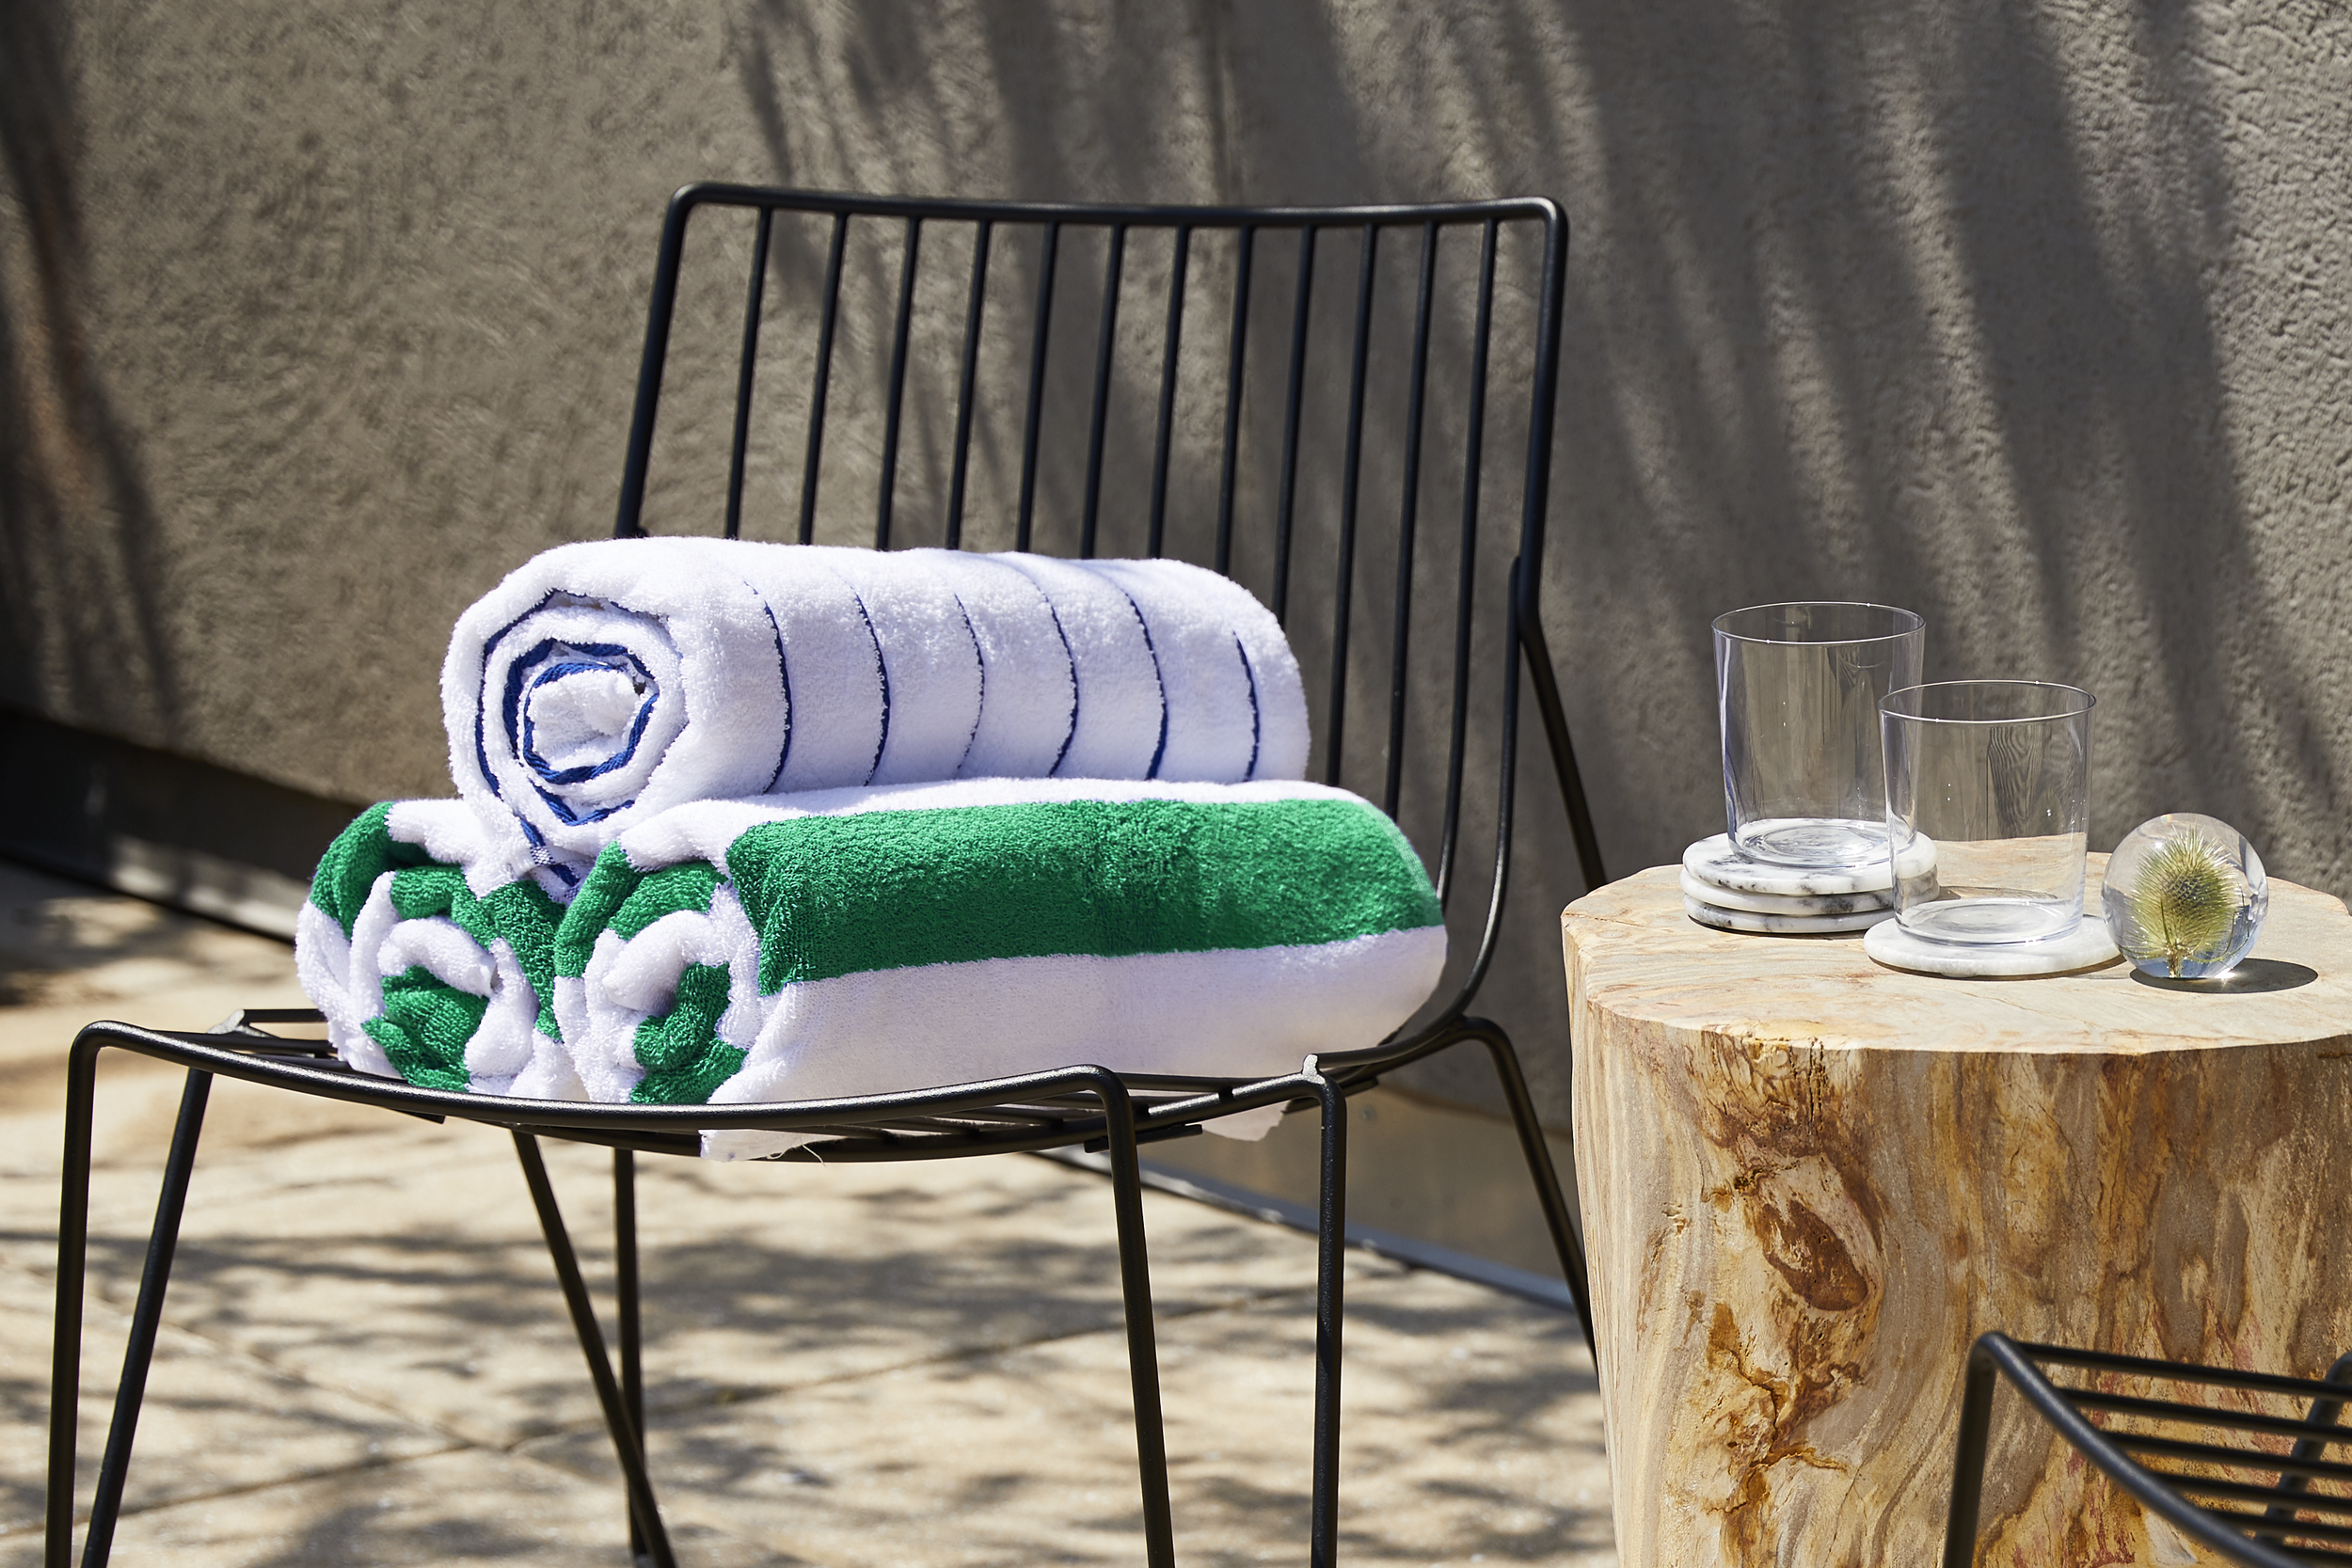 Revival_New_York_Luxury_Outdoor_Beach_Pool_Towels_Custom_Products_Hospitality_Hotels